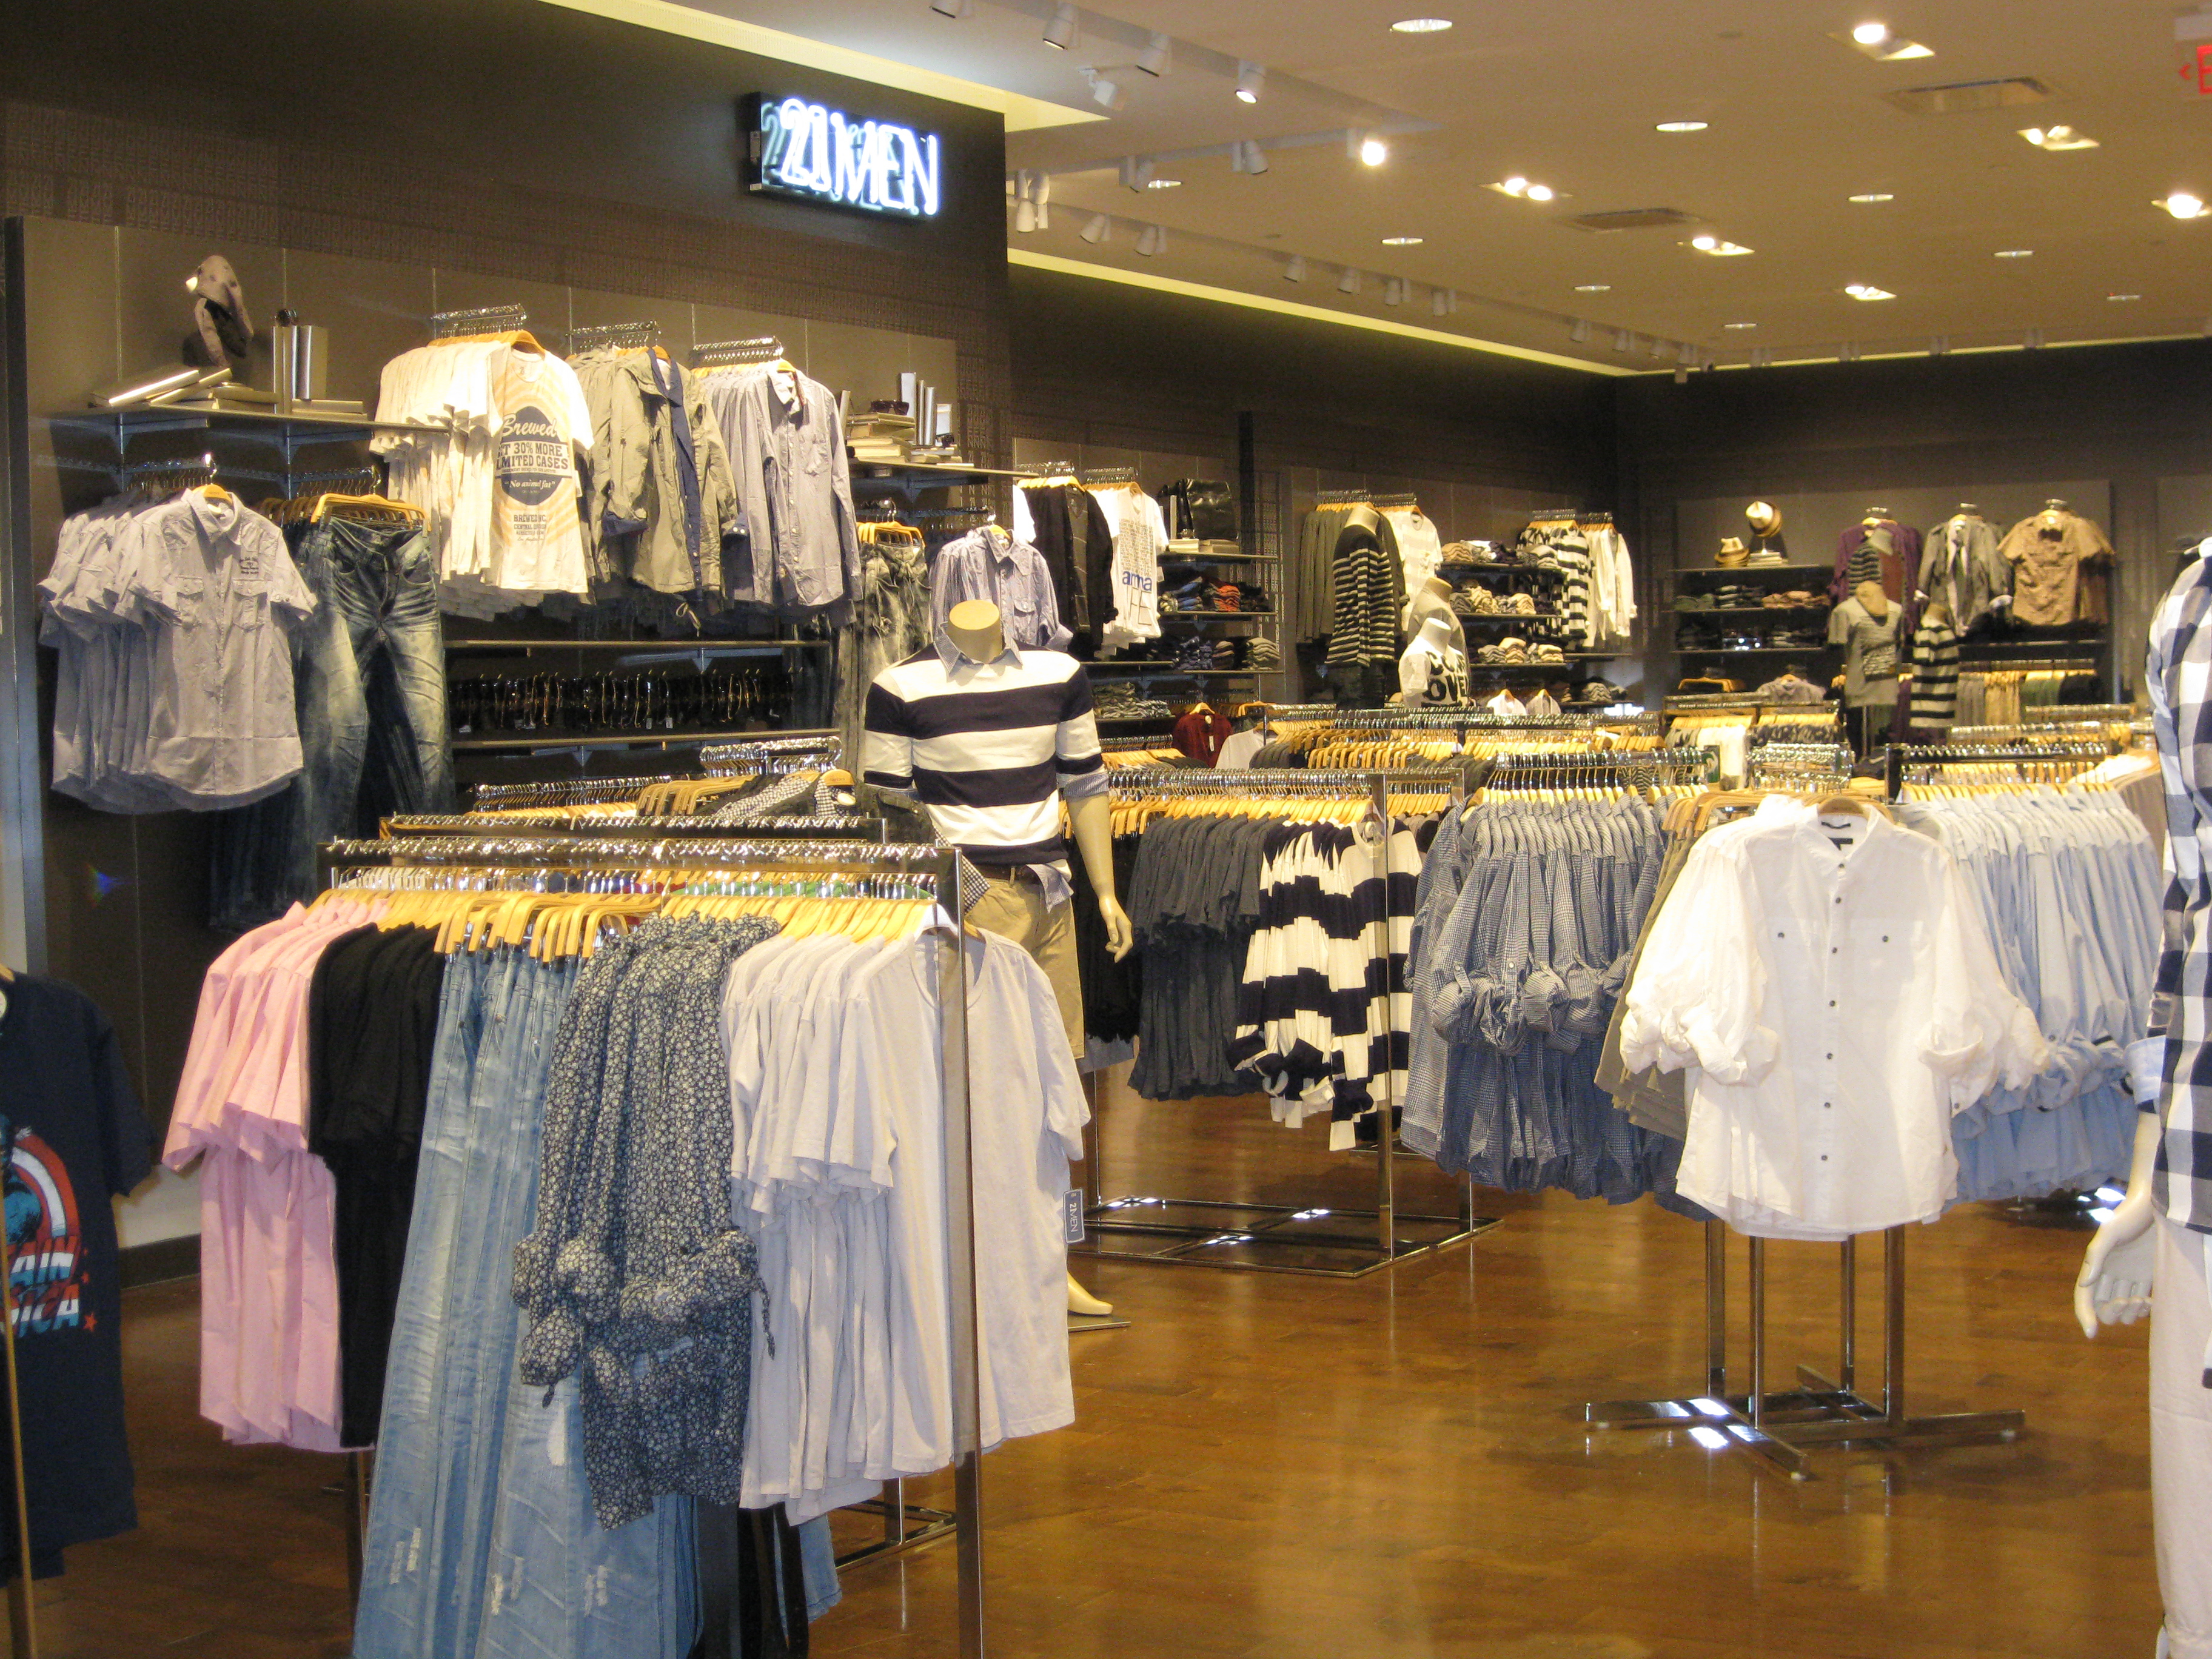 21 Forever The Largest Forever 21 In The Us Opens In Las Vegas